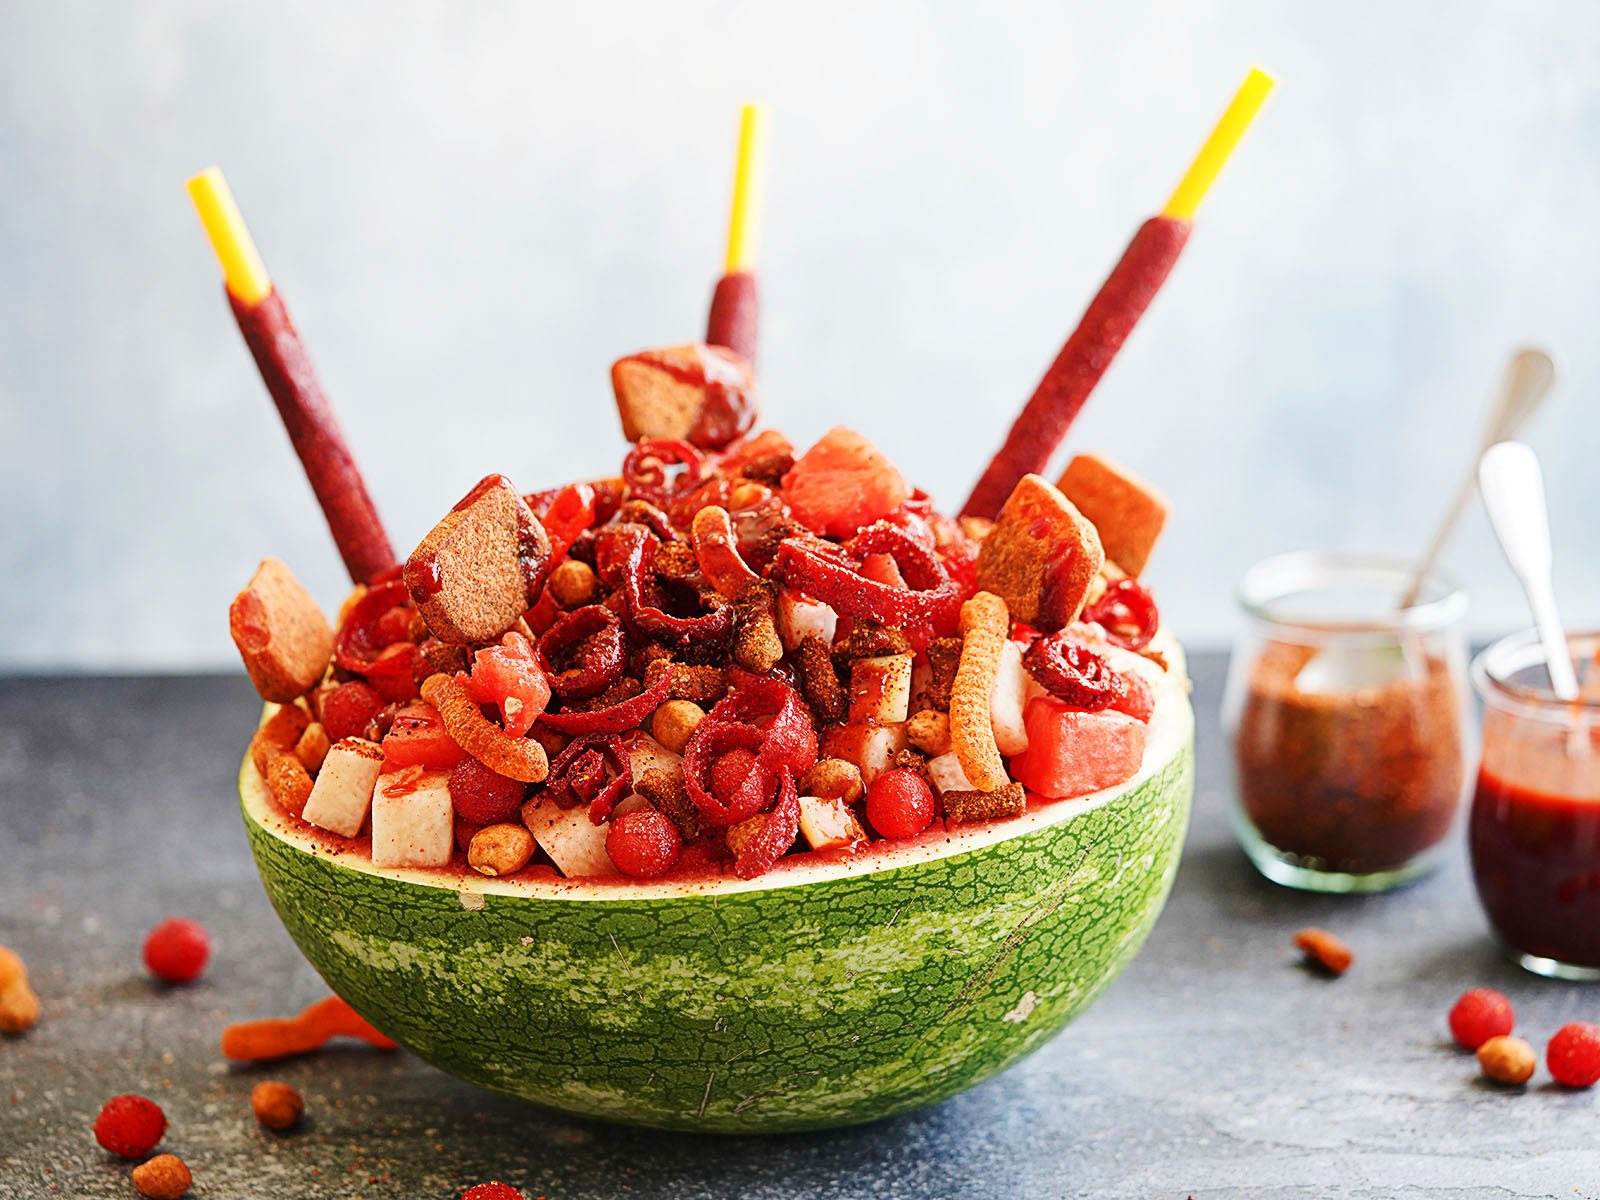 Sandia Loca topped with Mexican candy and chamoy